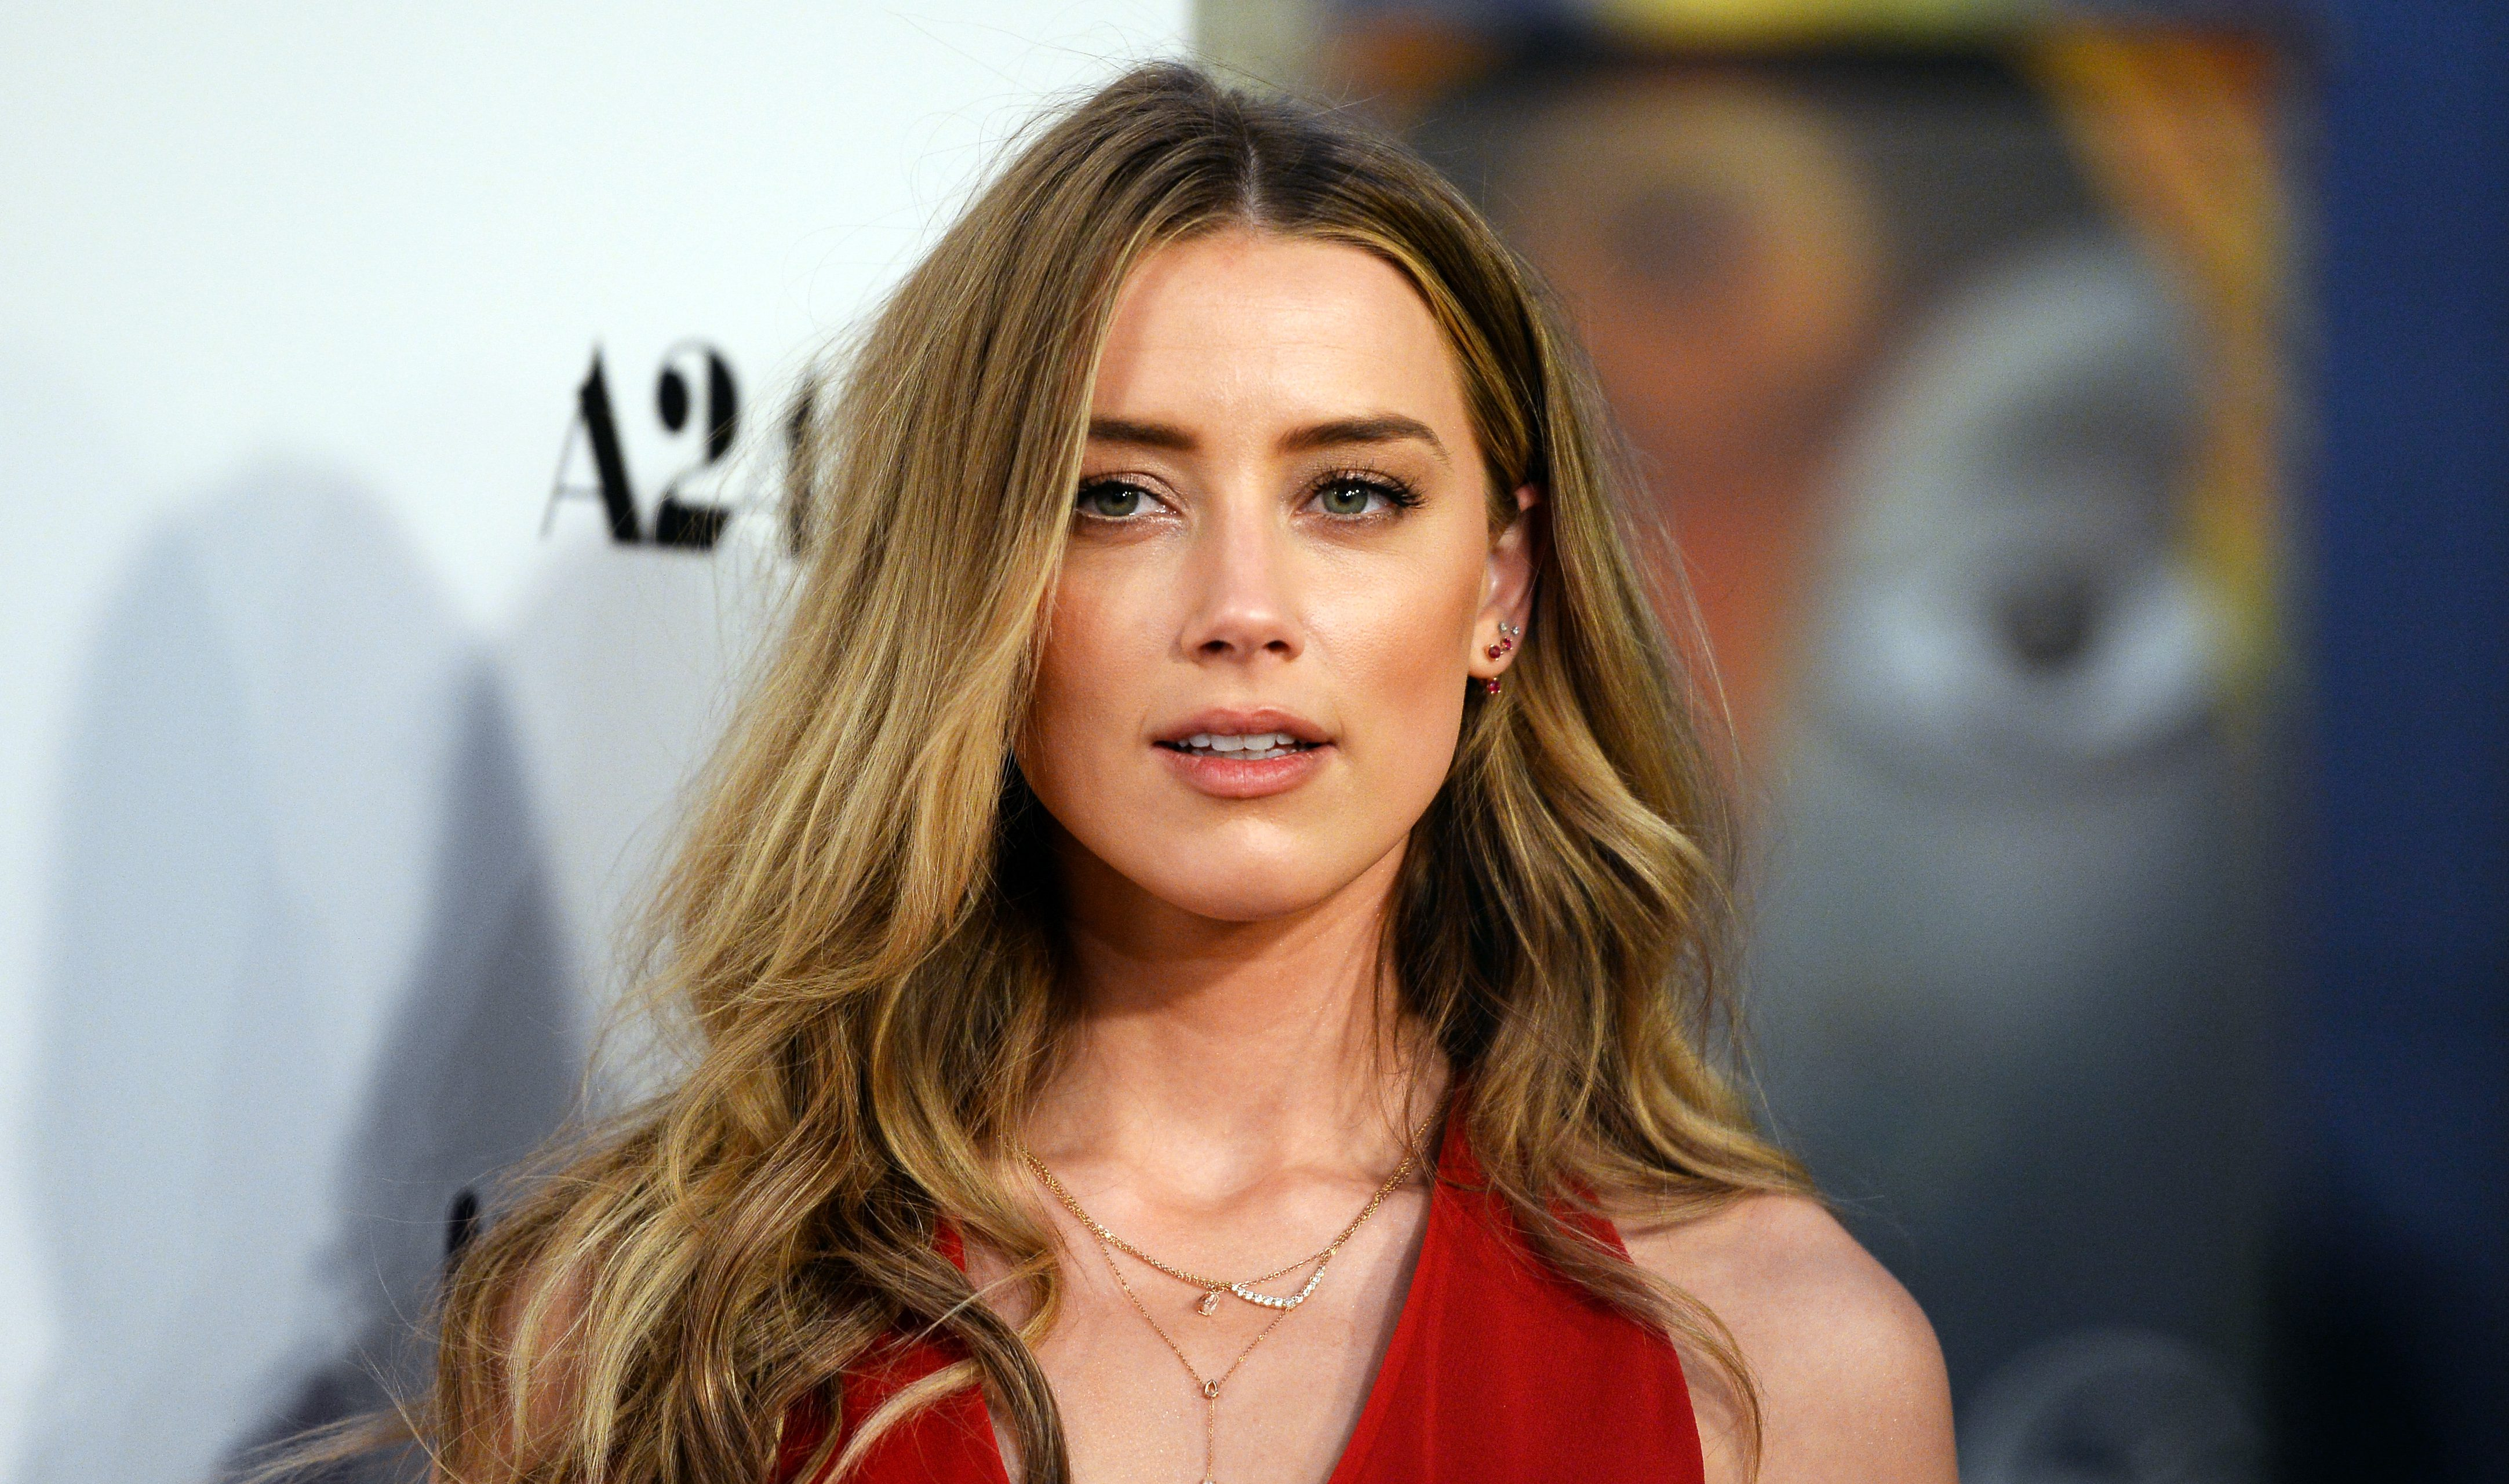 Here's our first look at Amber Heard as Mera in Justice League